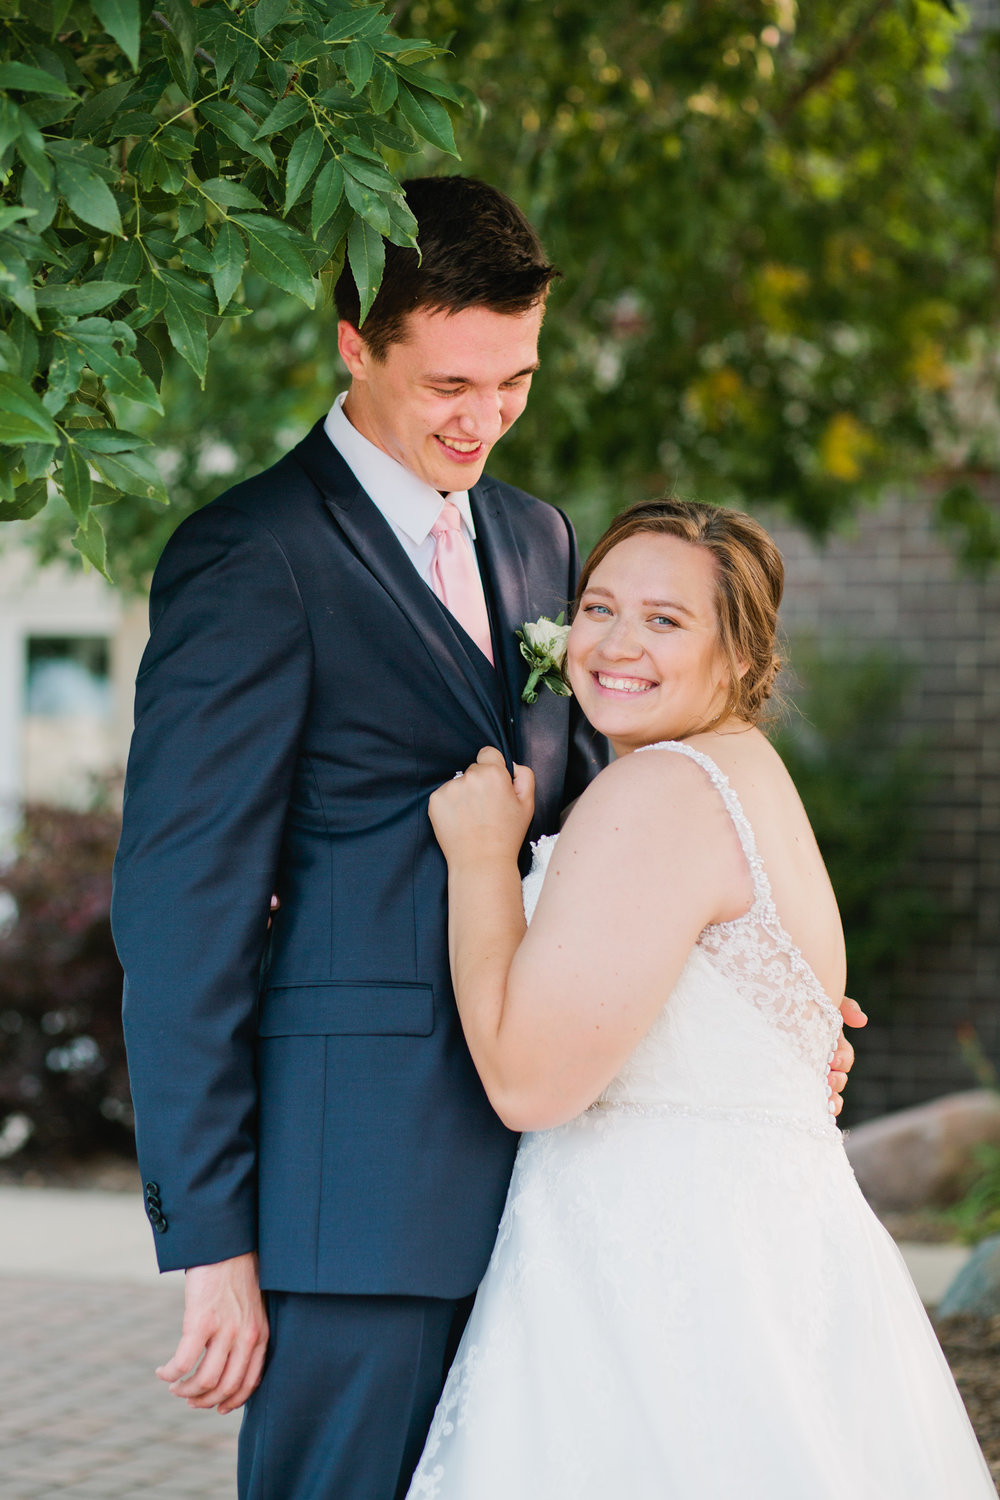 wedding photos of bride holding groom's lapel at noah's event center in des moines iowa